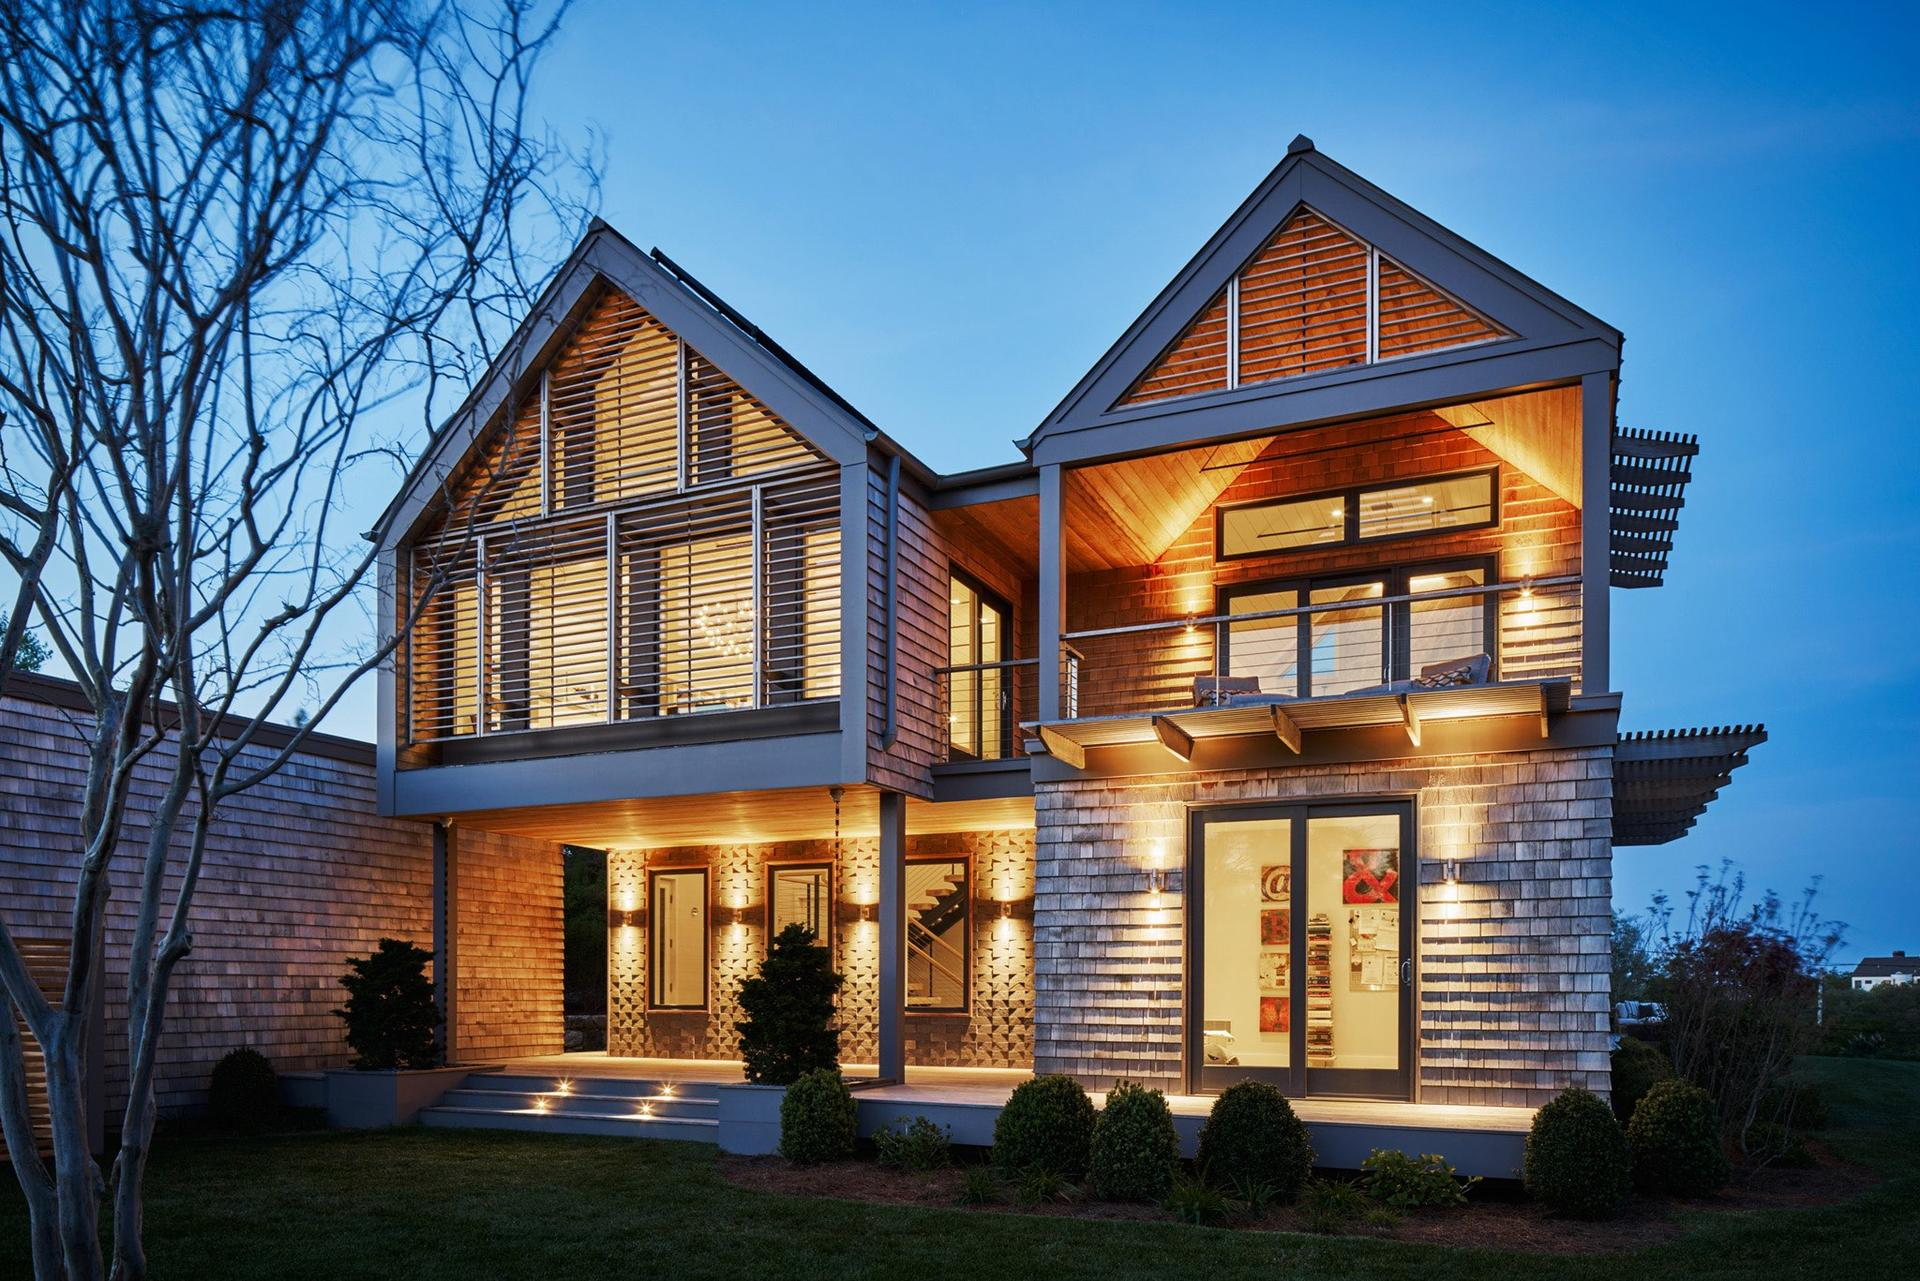 Single Family Home for Sale at Incredible New Montauk Modern With Oceanviews Montauk, New York